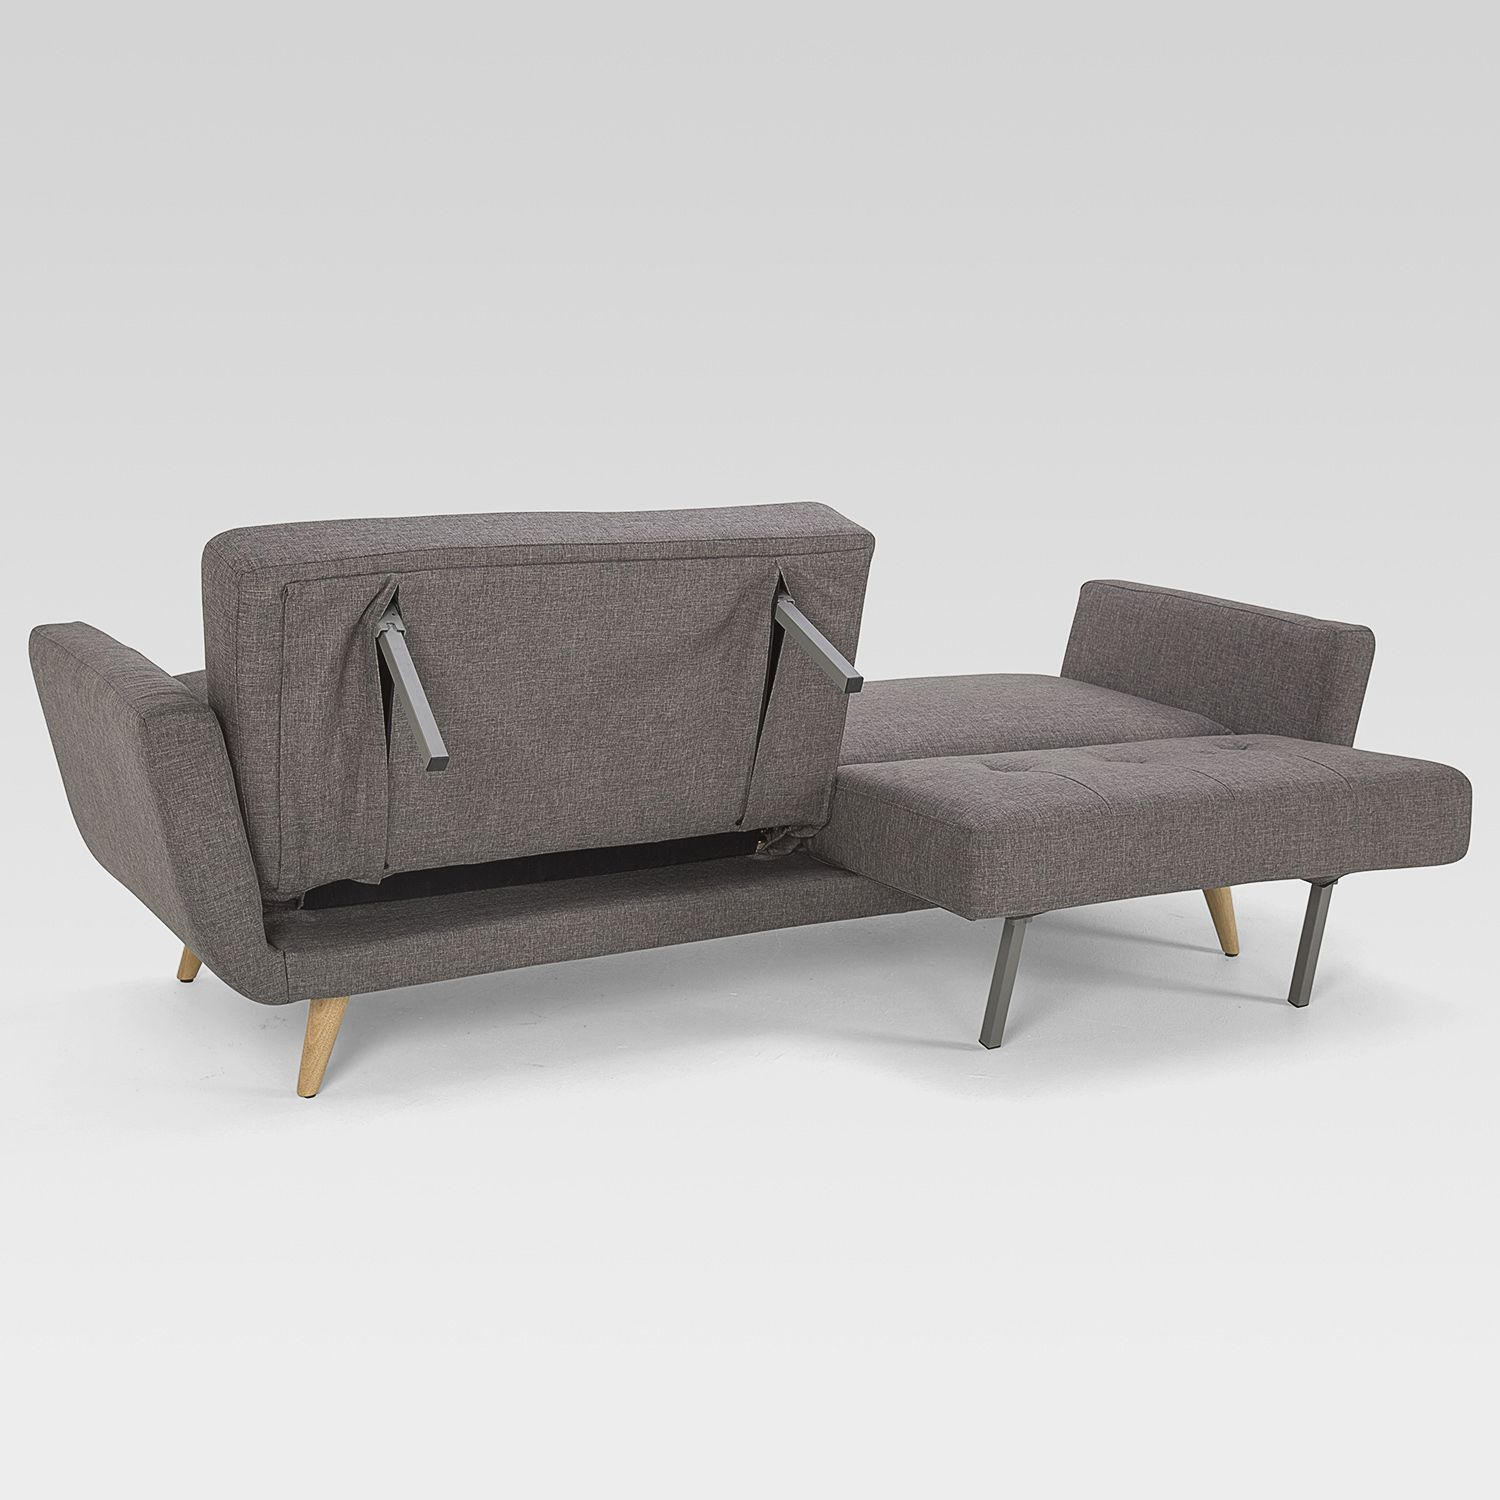 Isabella 3 Seater Fabric Sofa Bed – Next Day Delivery Isabella 3